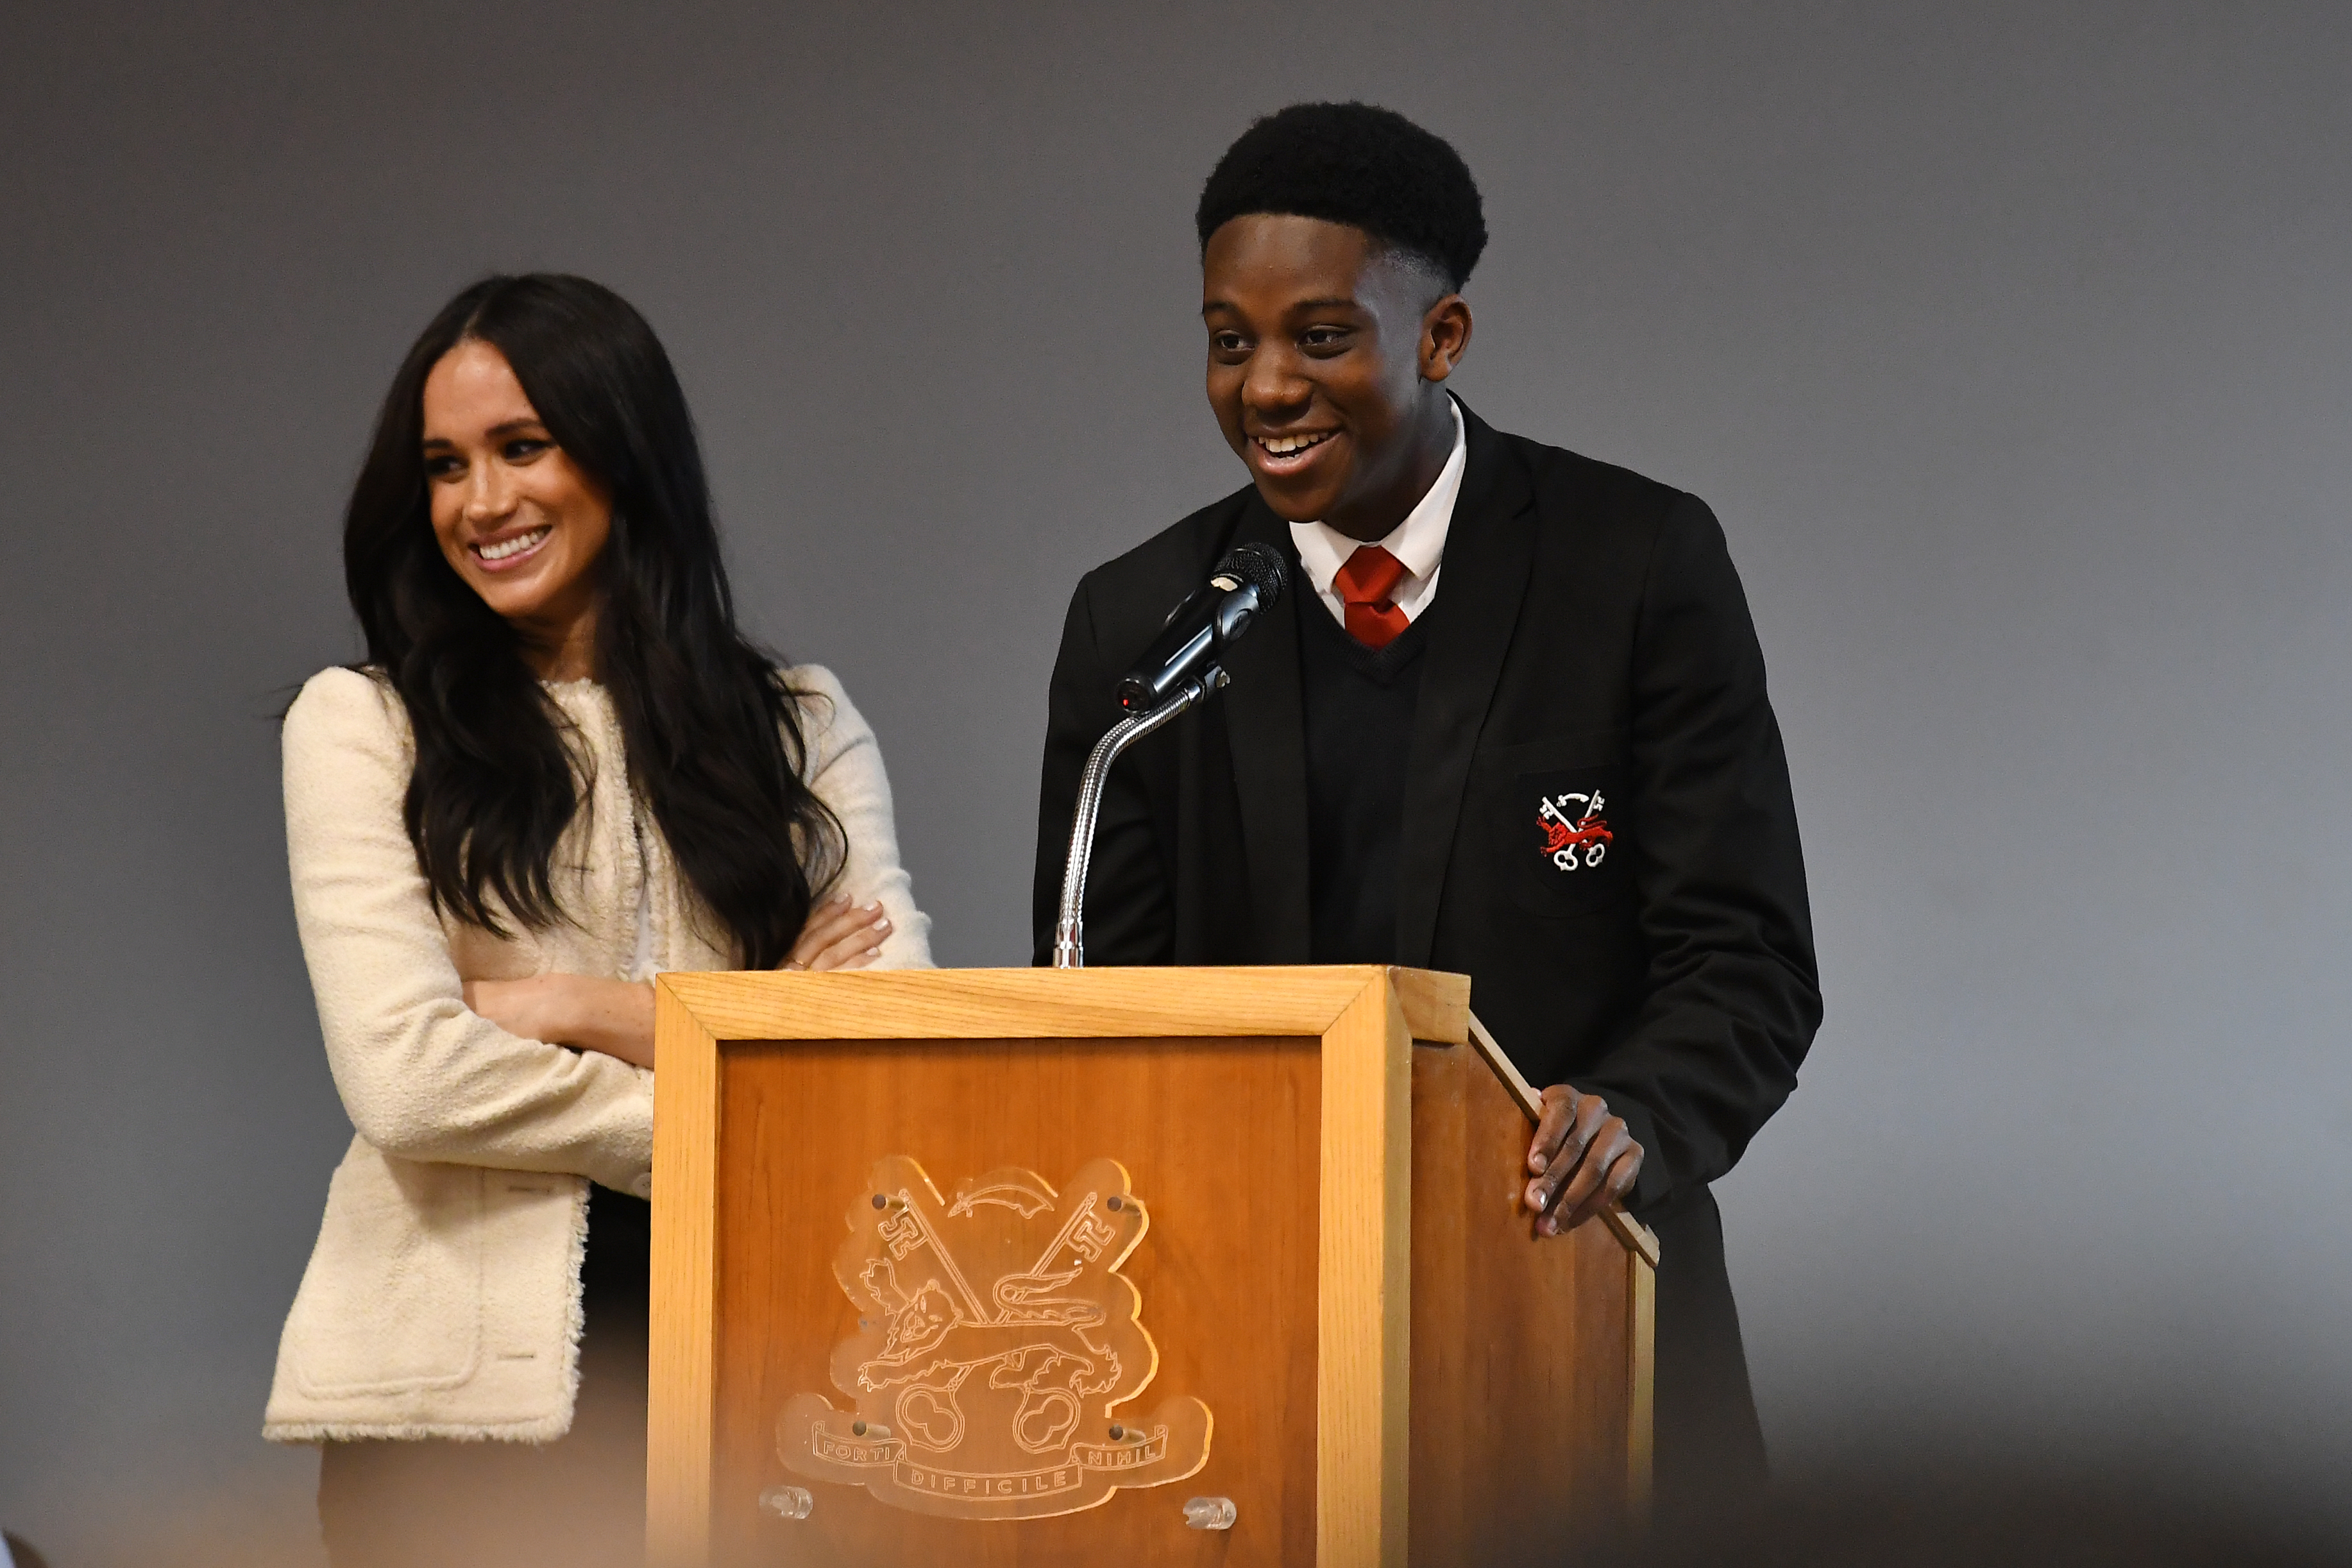 The Duchess of Sussex (left) smiles as head boy Aker Okoye, speaks in a school assembly, during her surprise visit to the Robert Clack Upper School in Dagenham, Essex, to celebrate International Women's Day.